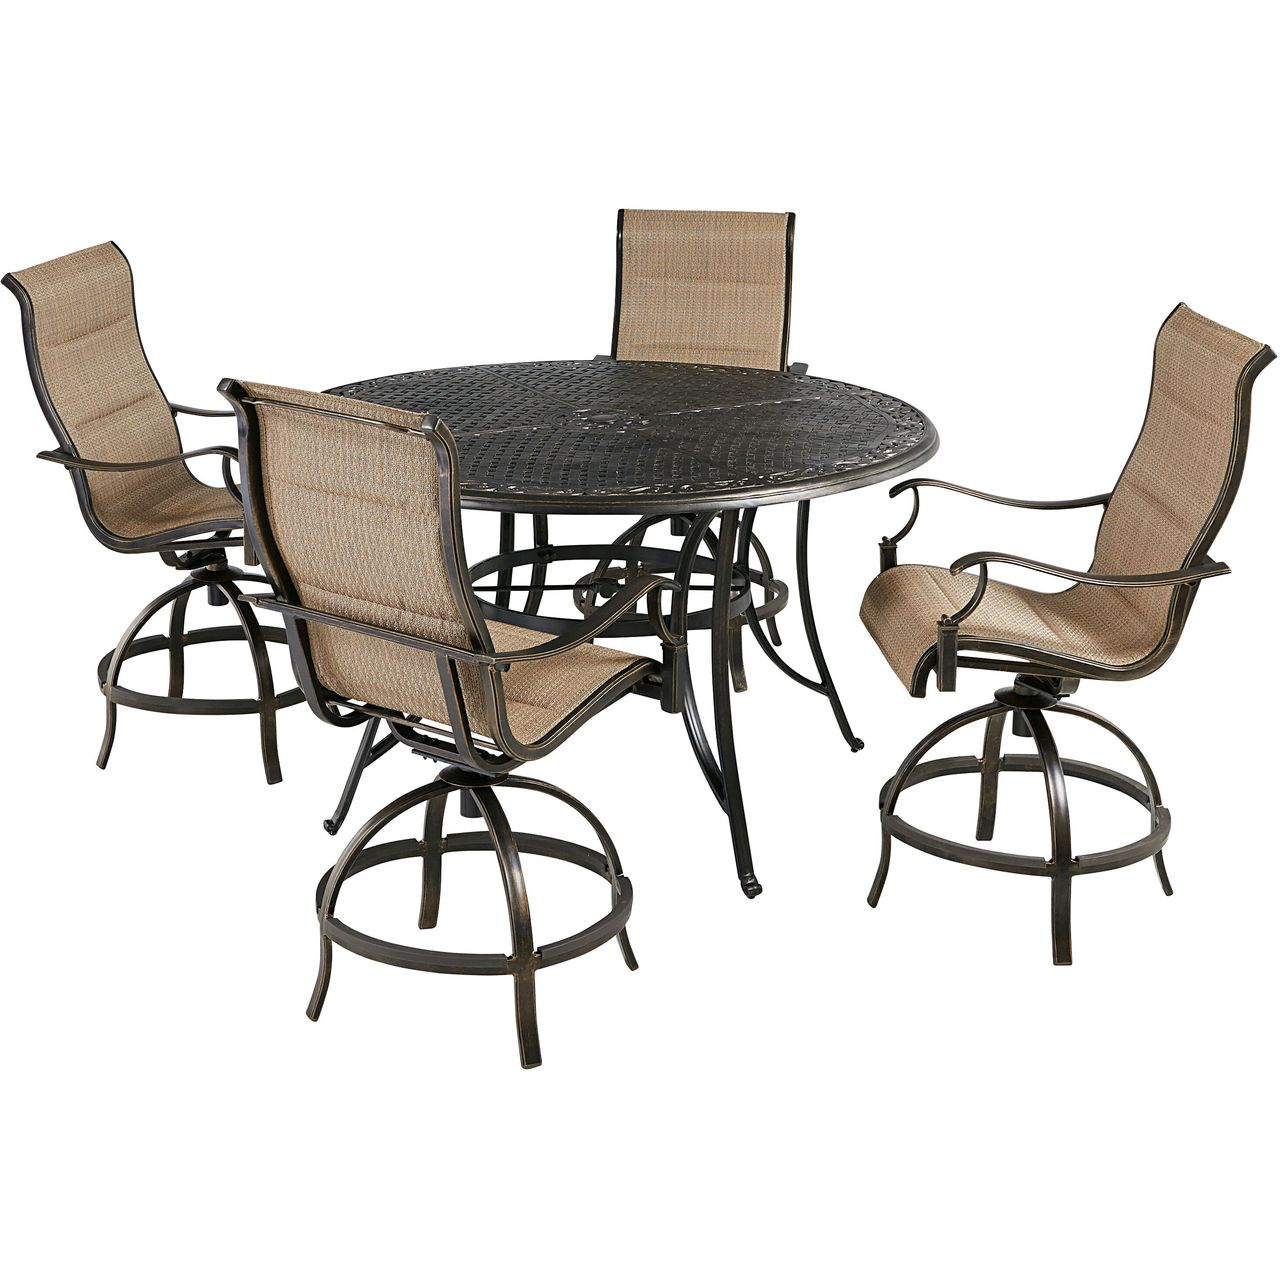 """Hanover Traditions 5-Pc 56"""" High-Dining Set With Tan Chairs"""